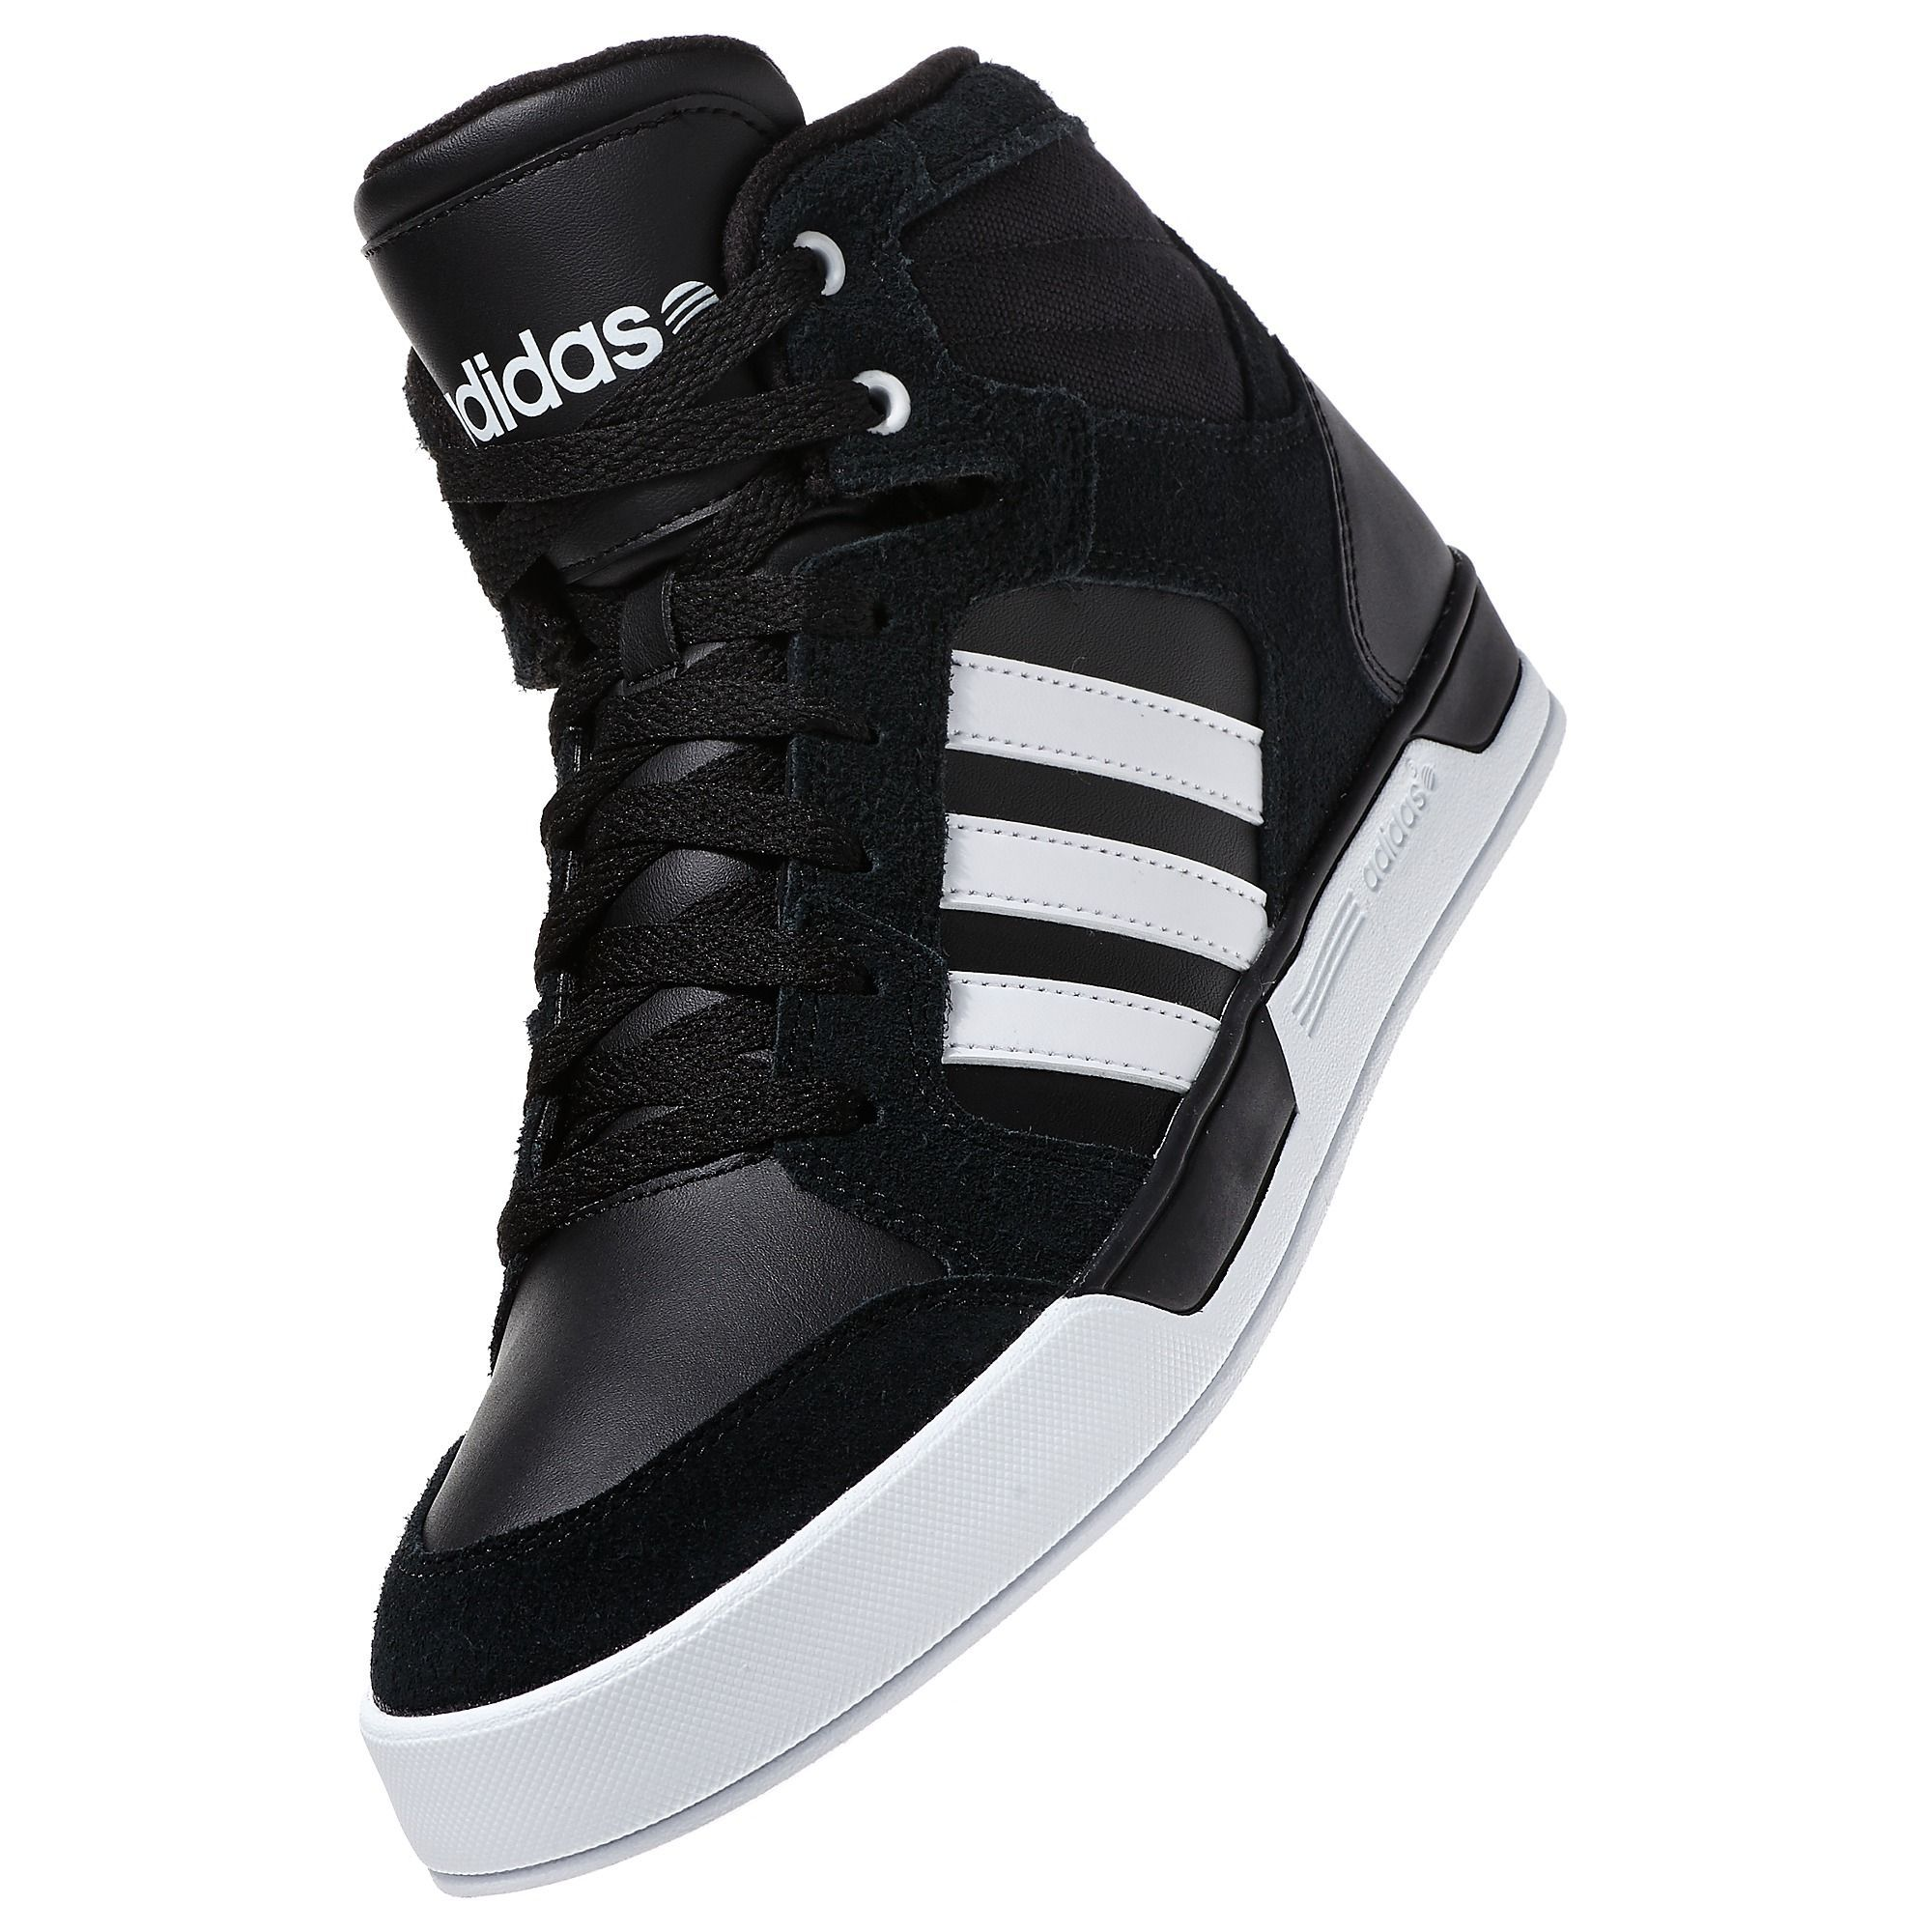 ShoesI Adidas Lifting Weight These Need For Raleigh Bbneo E29beIDYWH